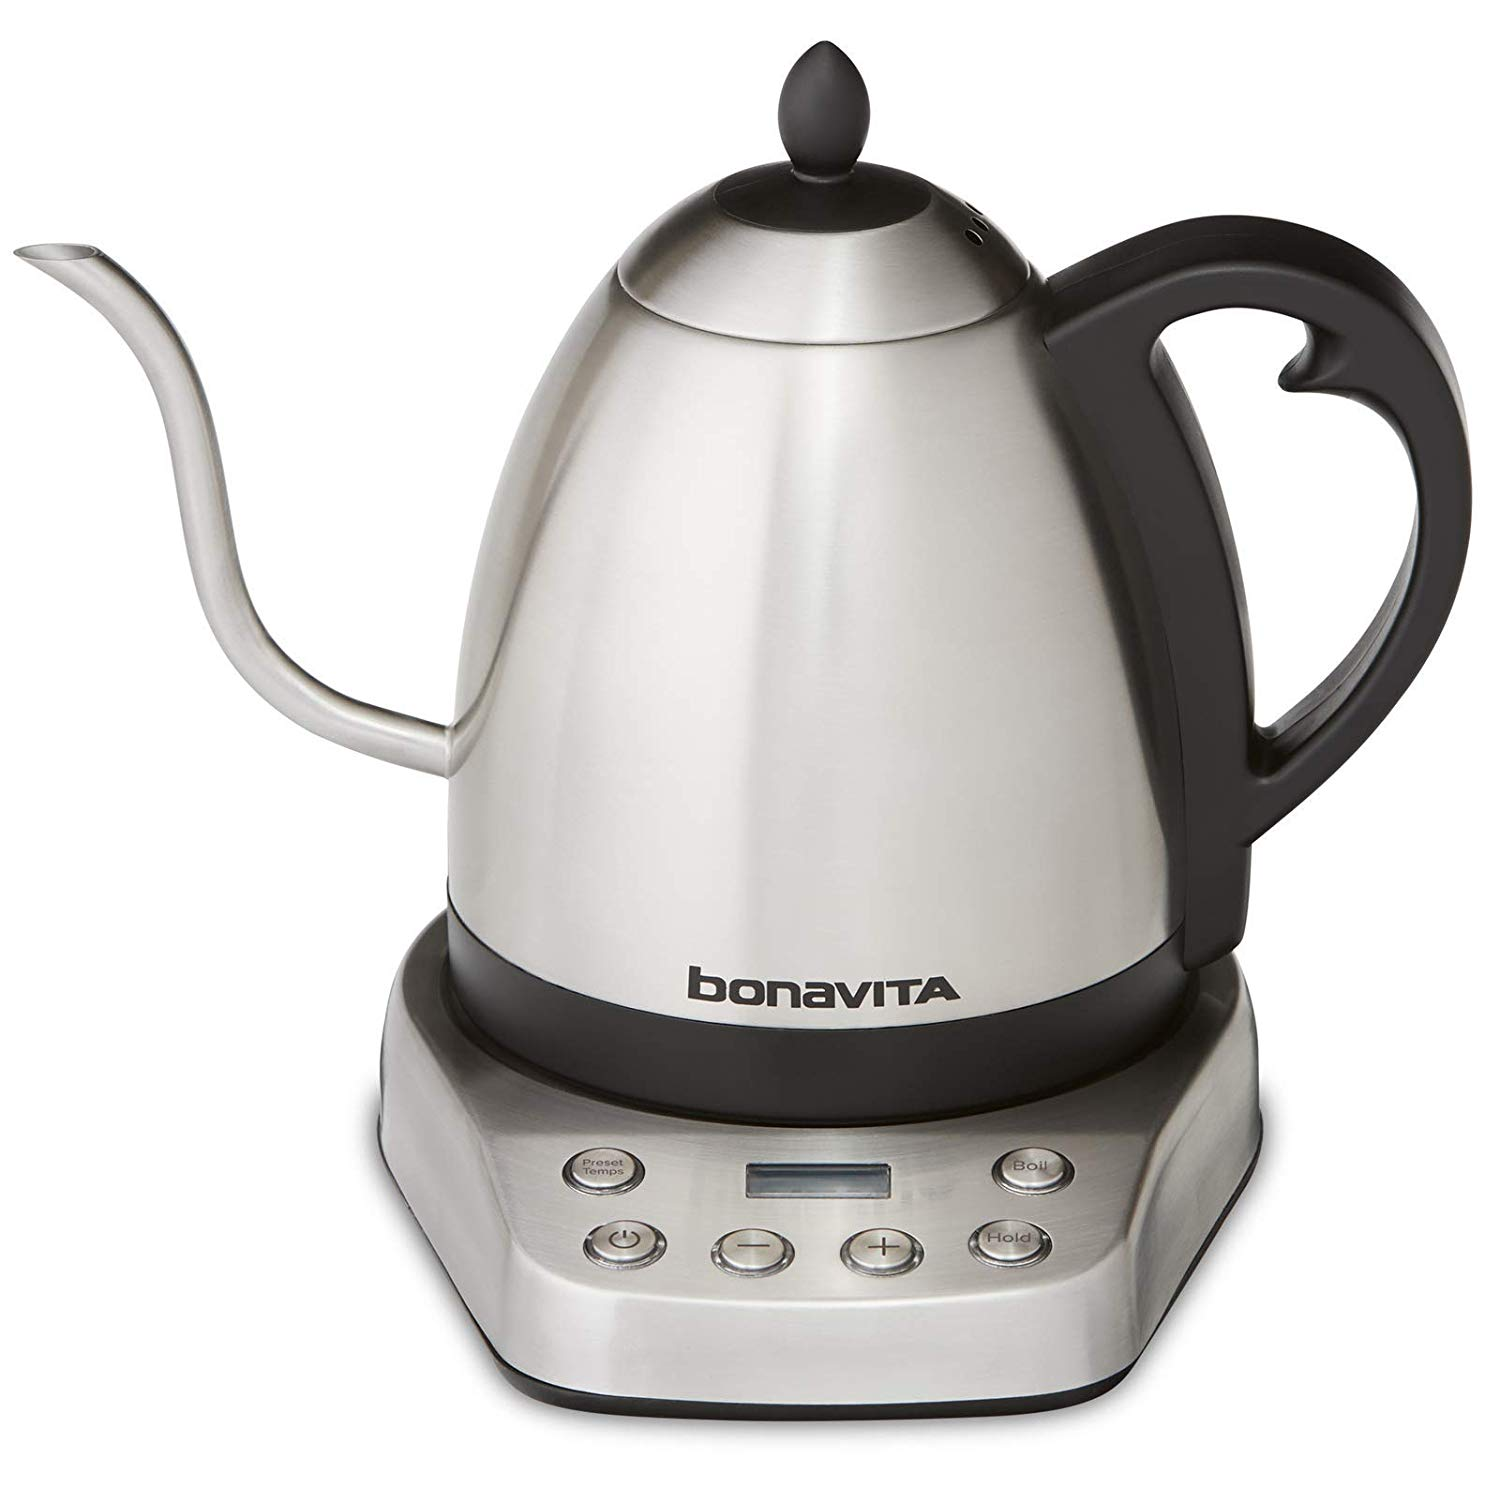 bonavita-interurban-painted-variable-temp-gooseneck-kettle-brushed-stainless